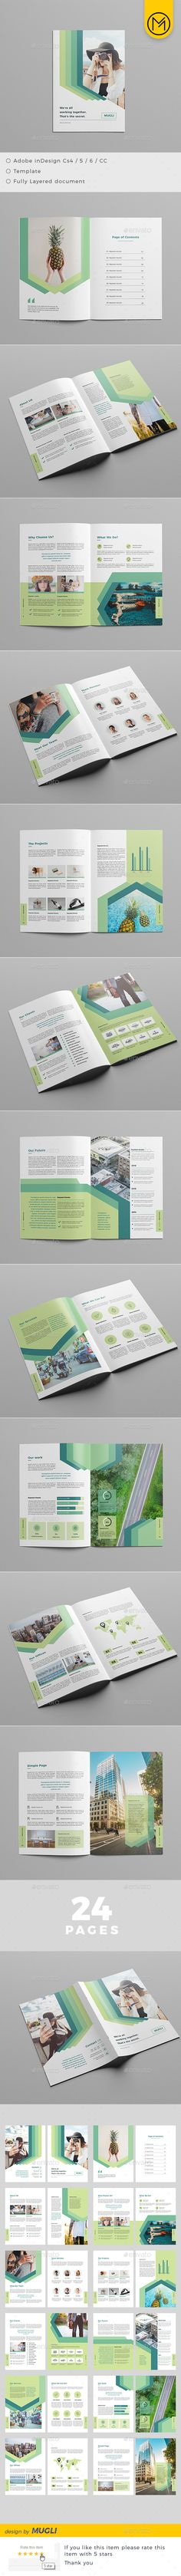 The Company Profile | Company profile, Brochure template and Brochures